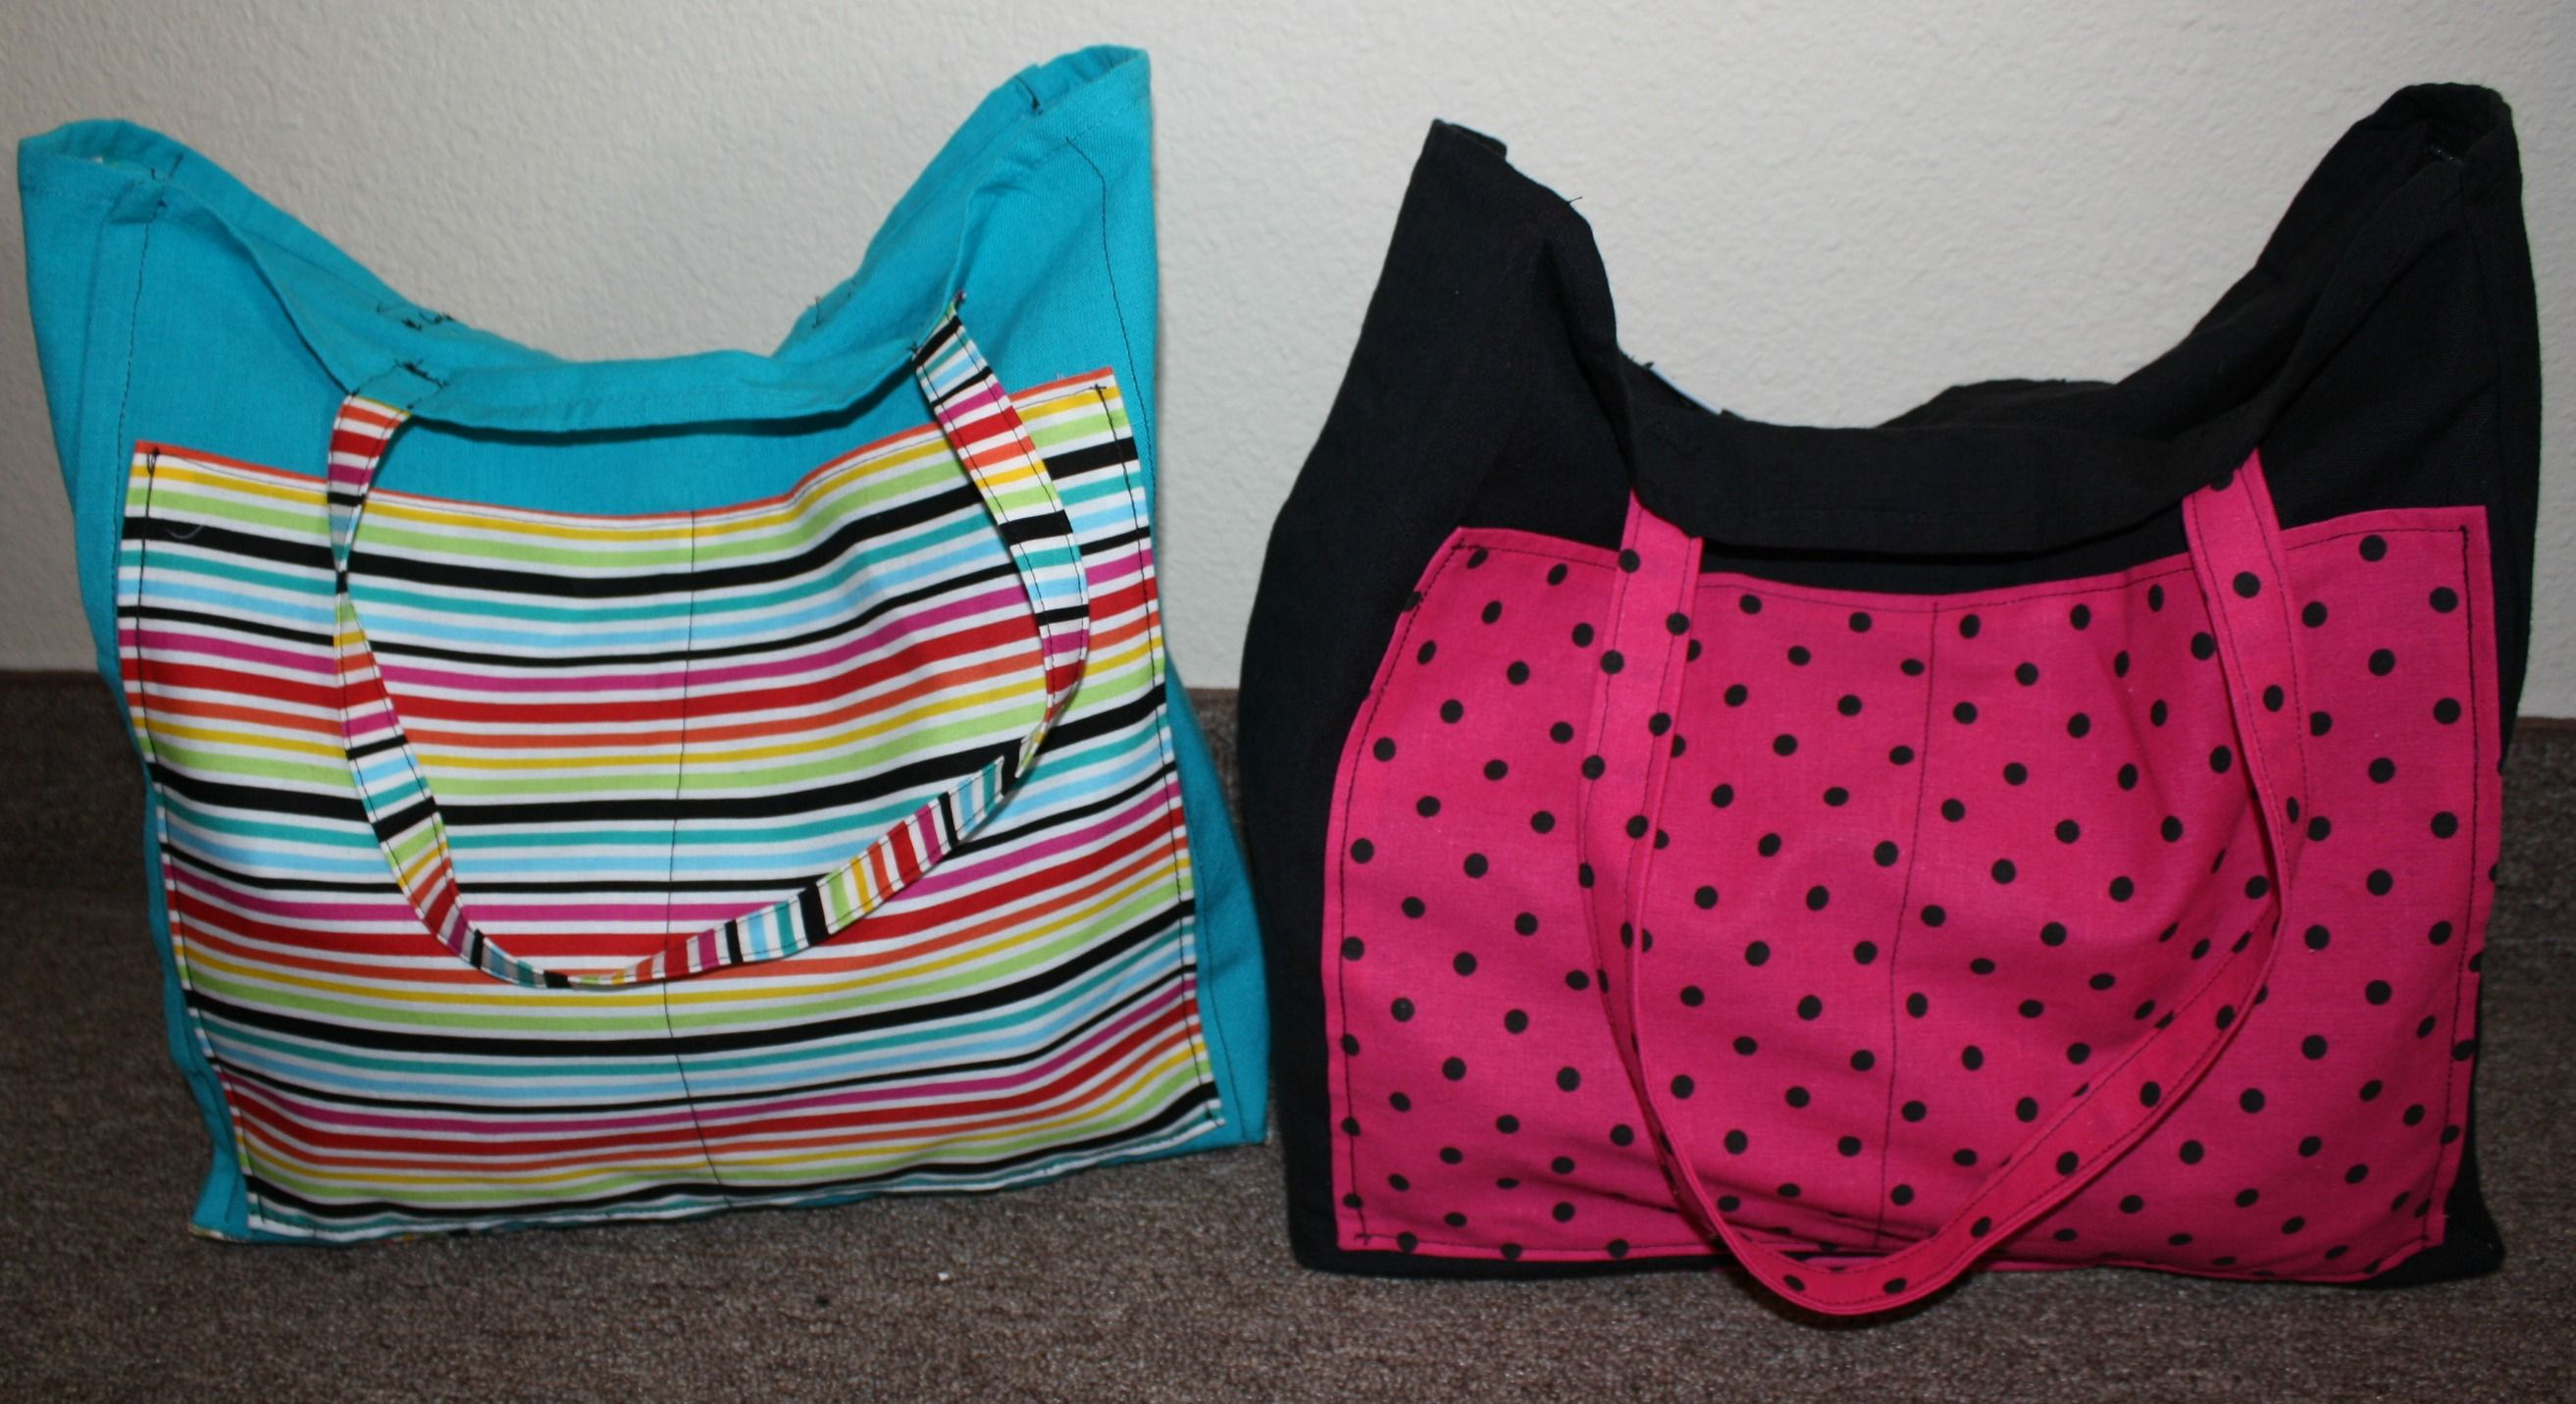 the beach bags I made for my roommate